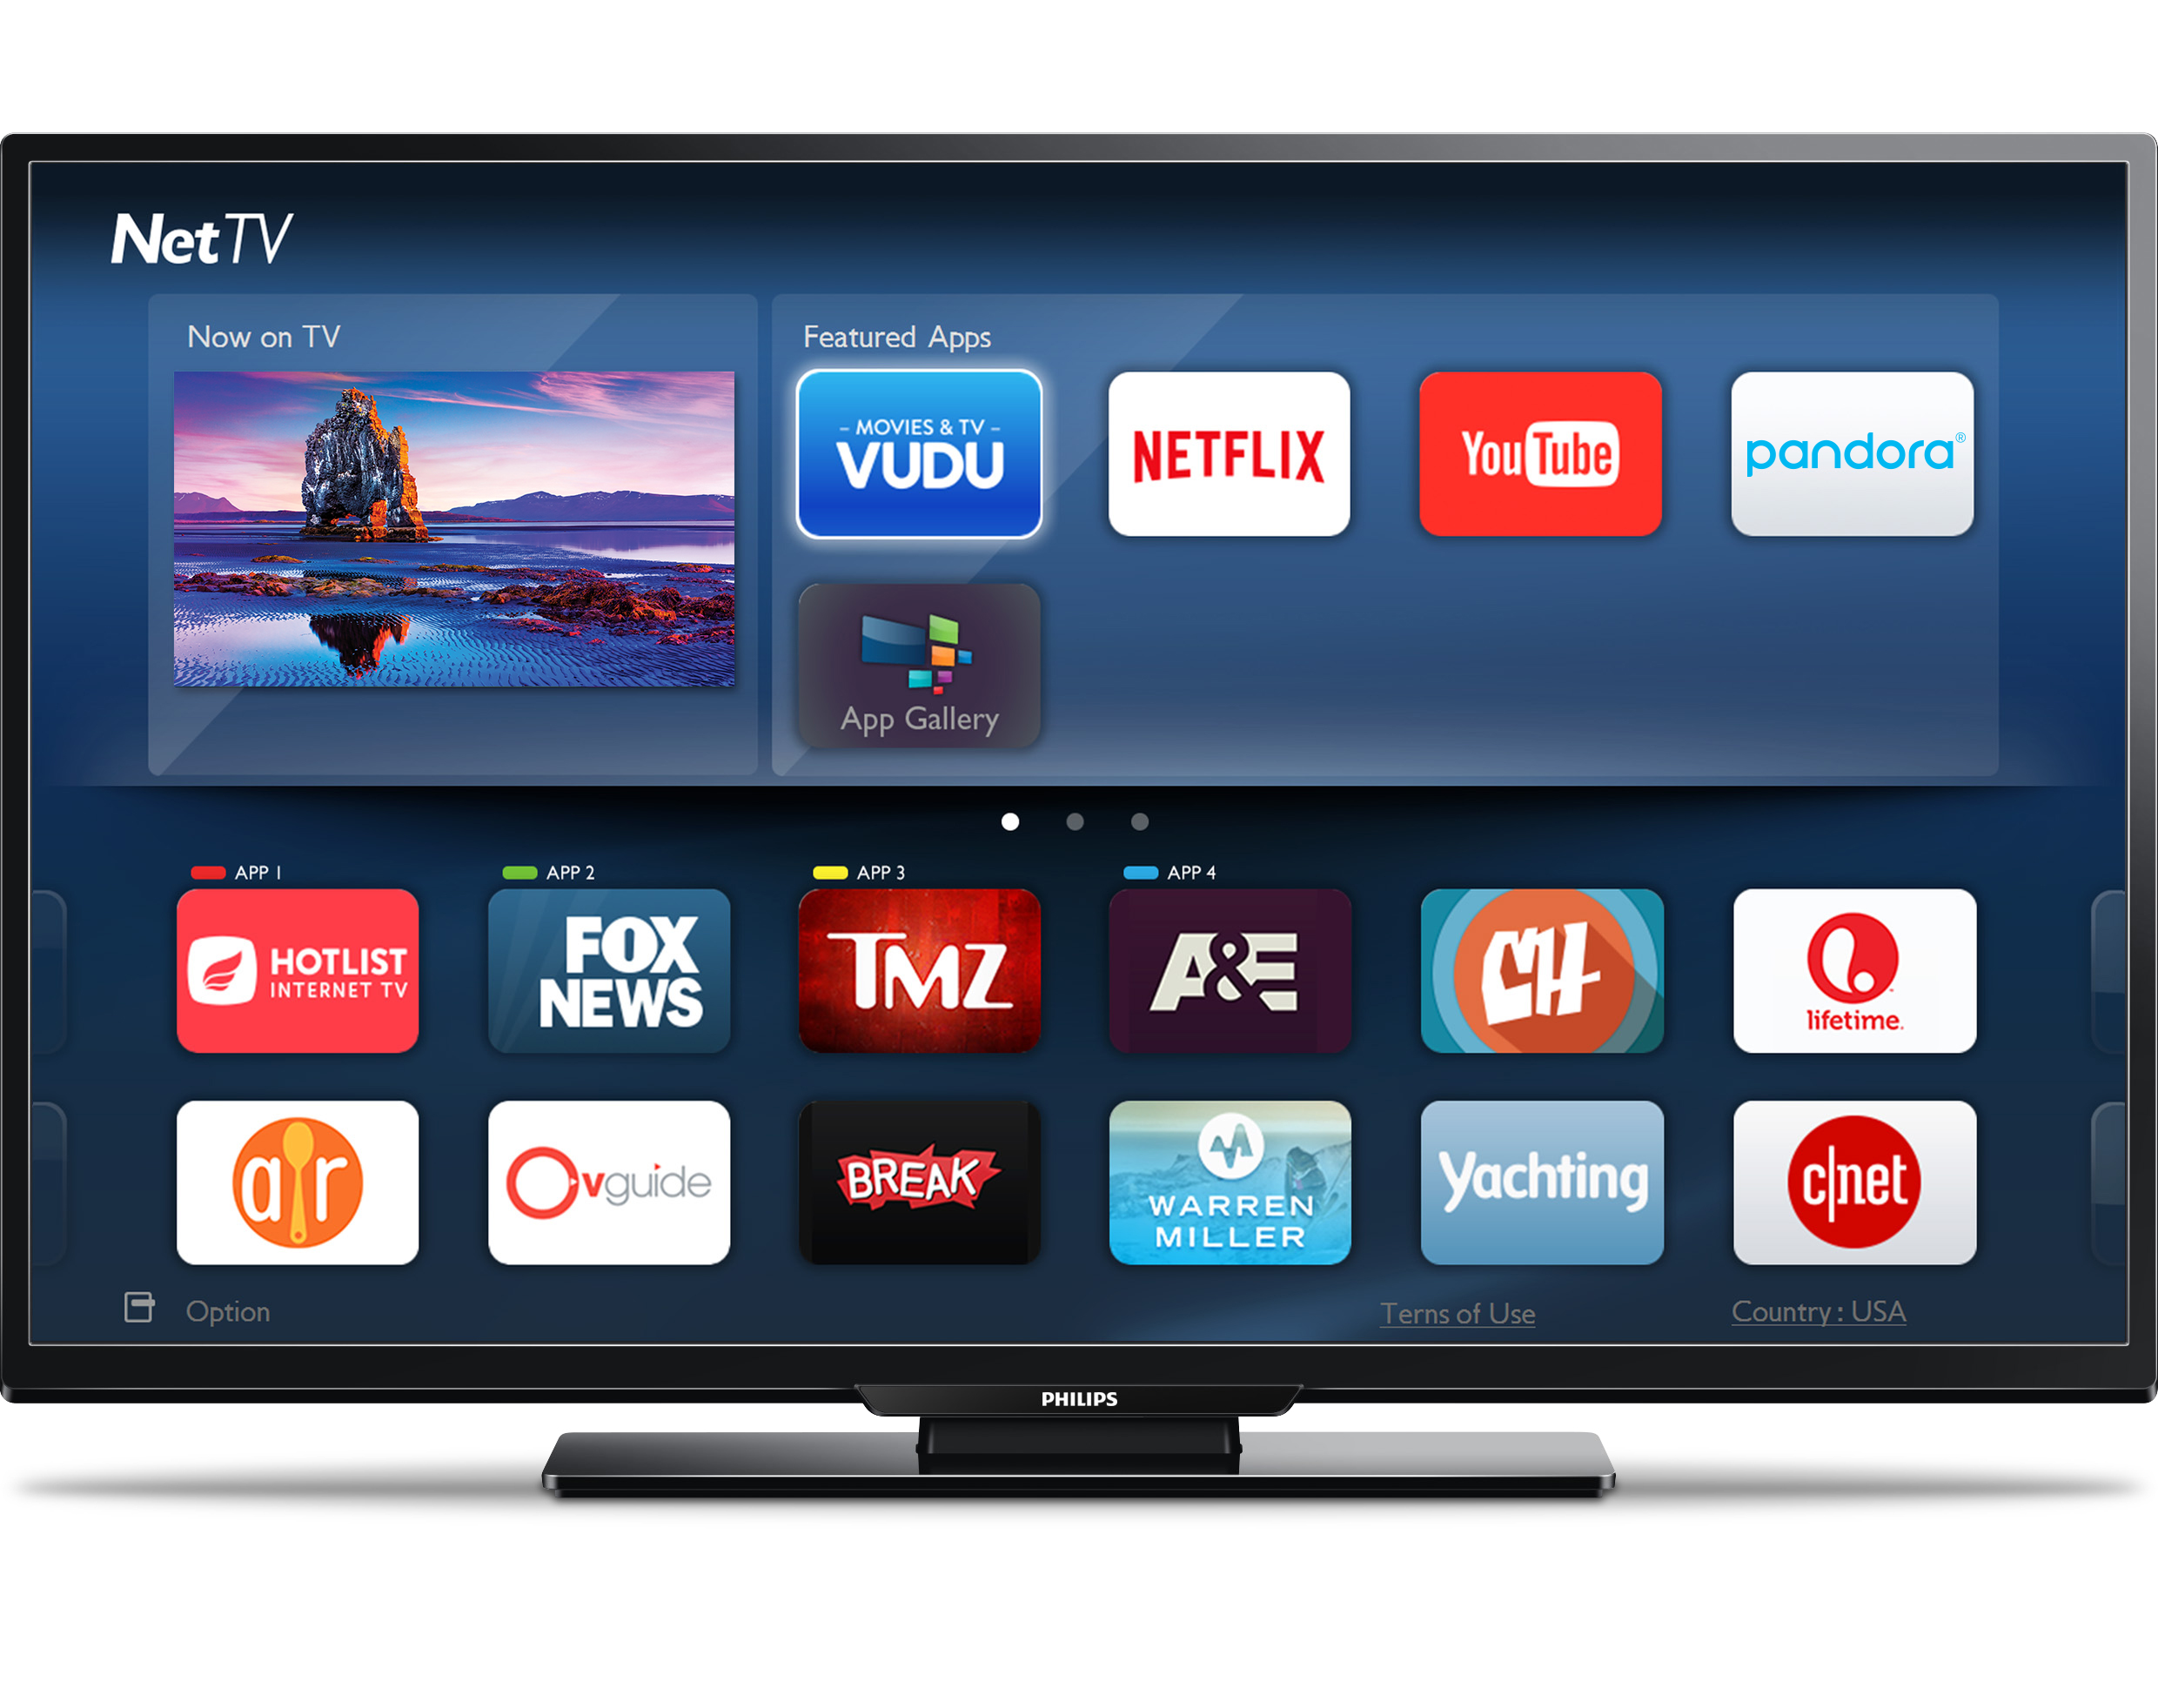 How to hook up philips smart tv to wifi